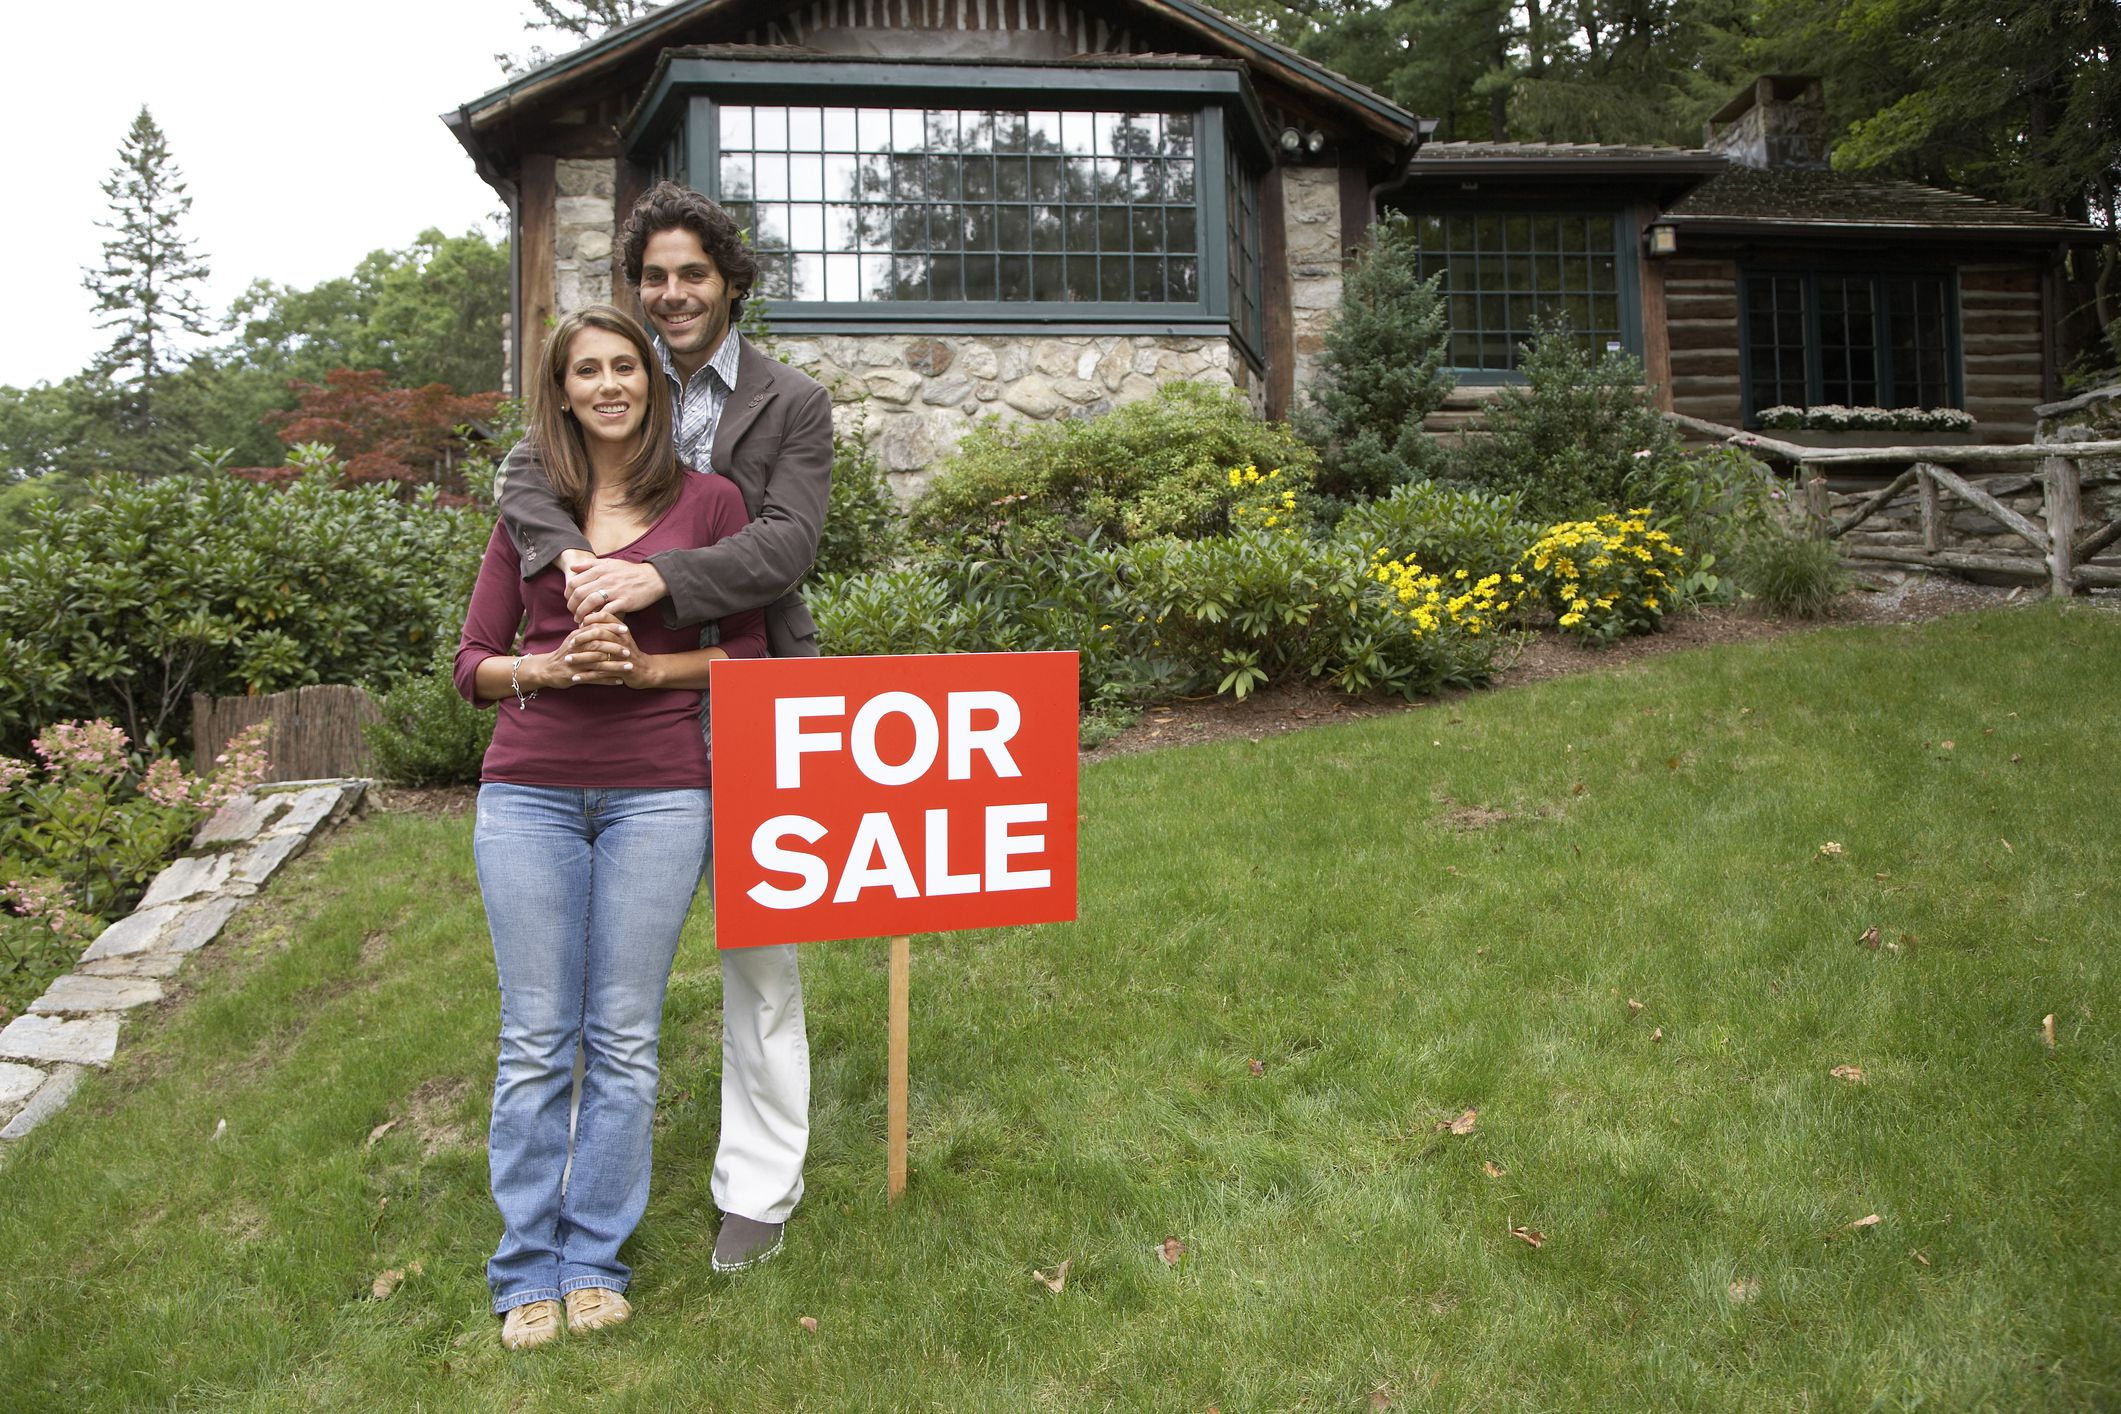 Buying your first home together reco website - How To Buy A Move Up Home Without A Contingency In A Hot Market